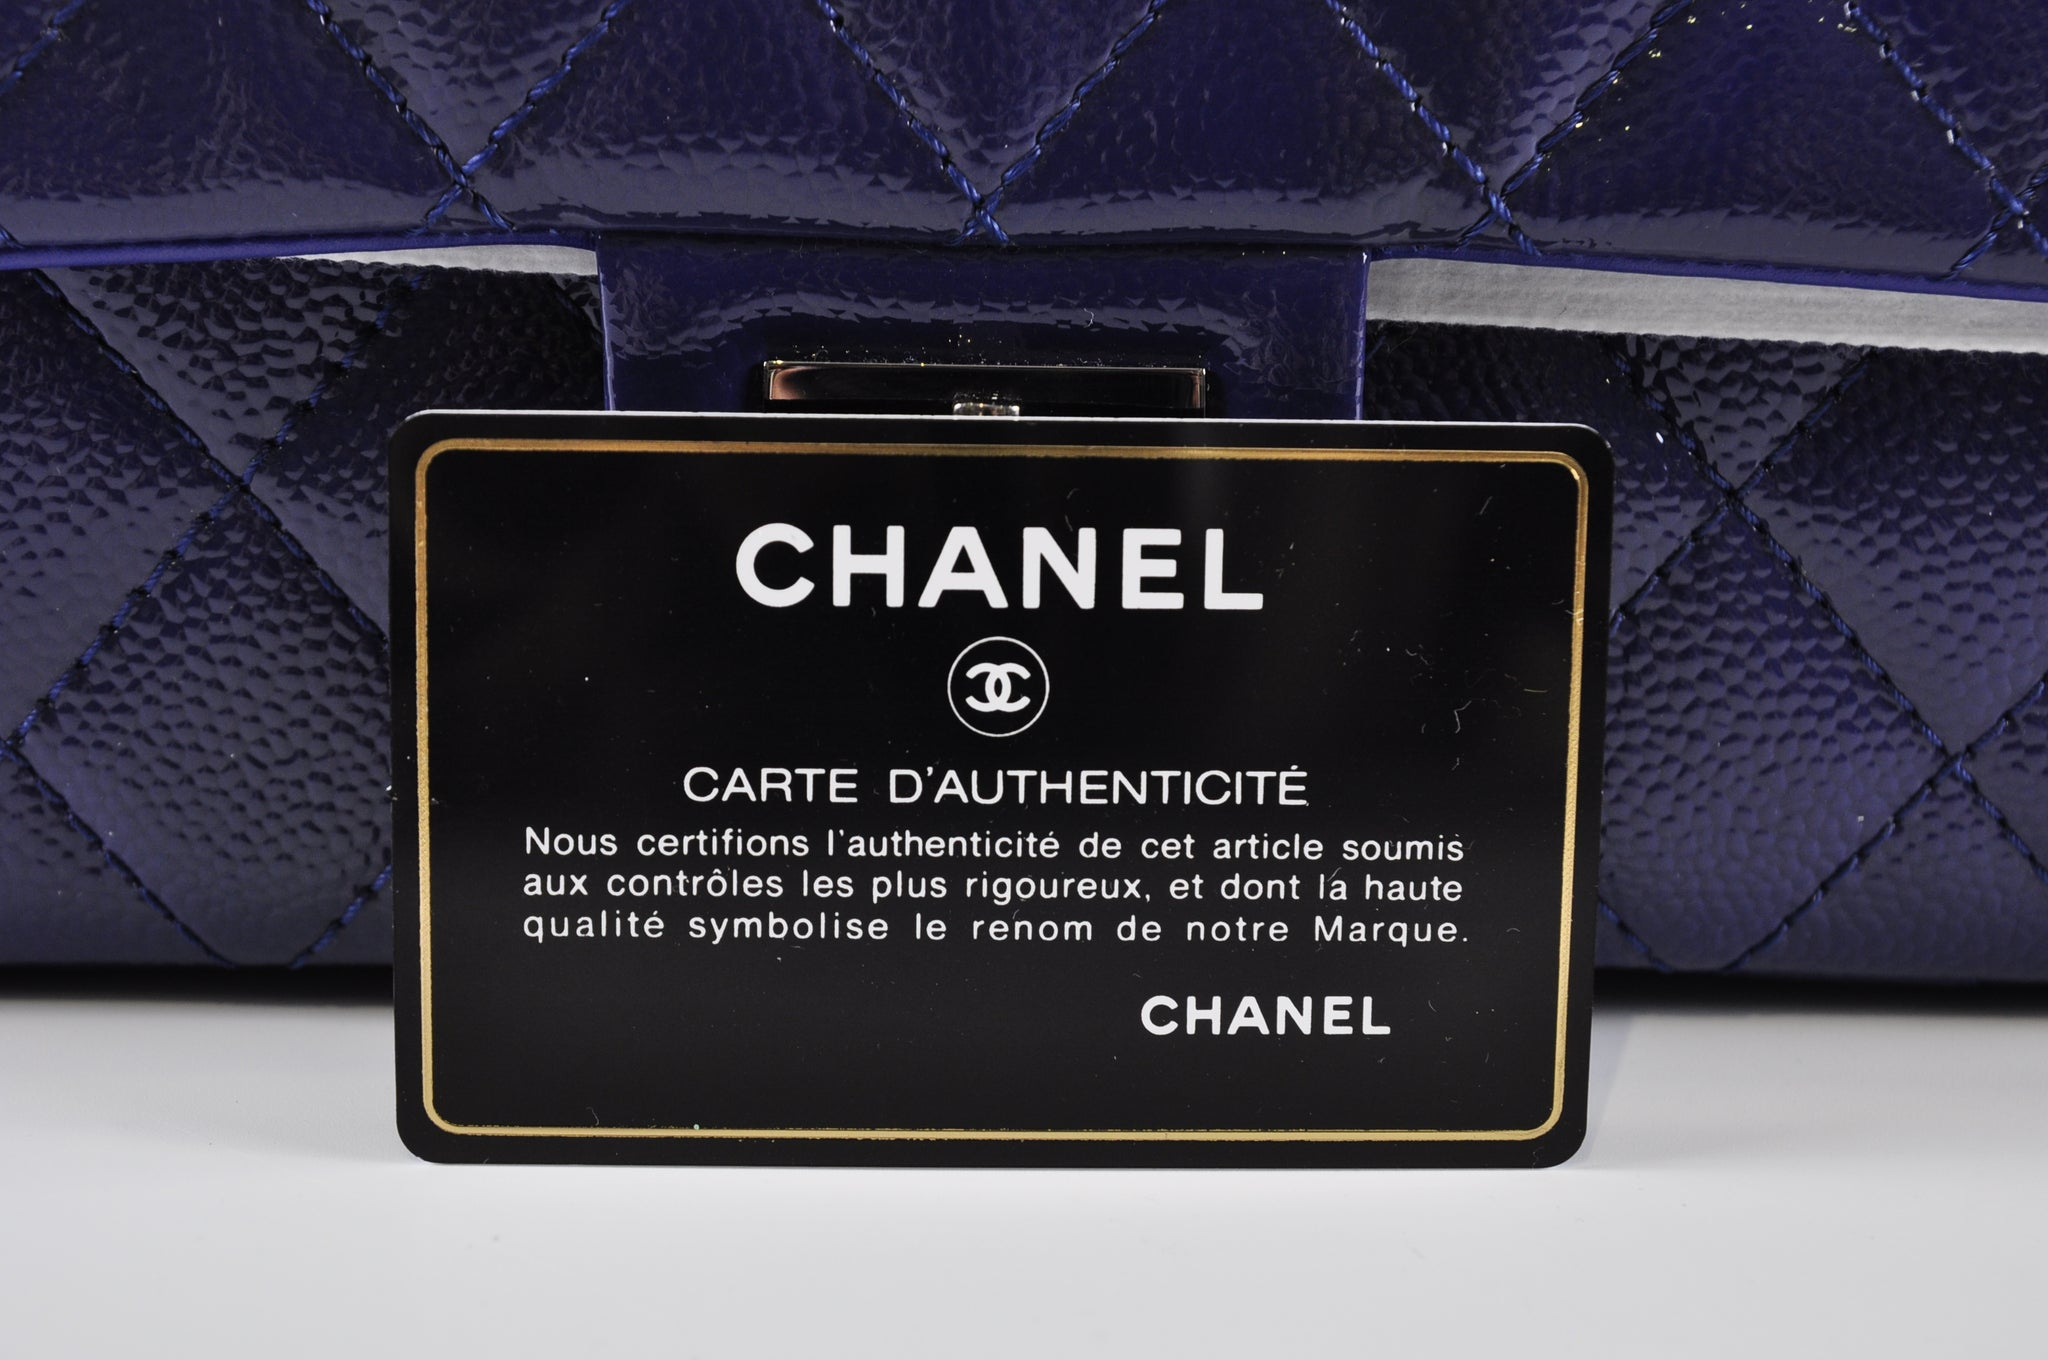 Chanel 227 Reissue Flap Bag In Blue Grained Patent Leather 20248996 - Glampot